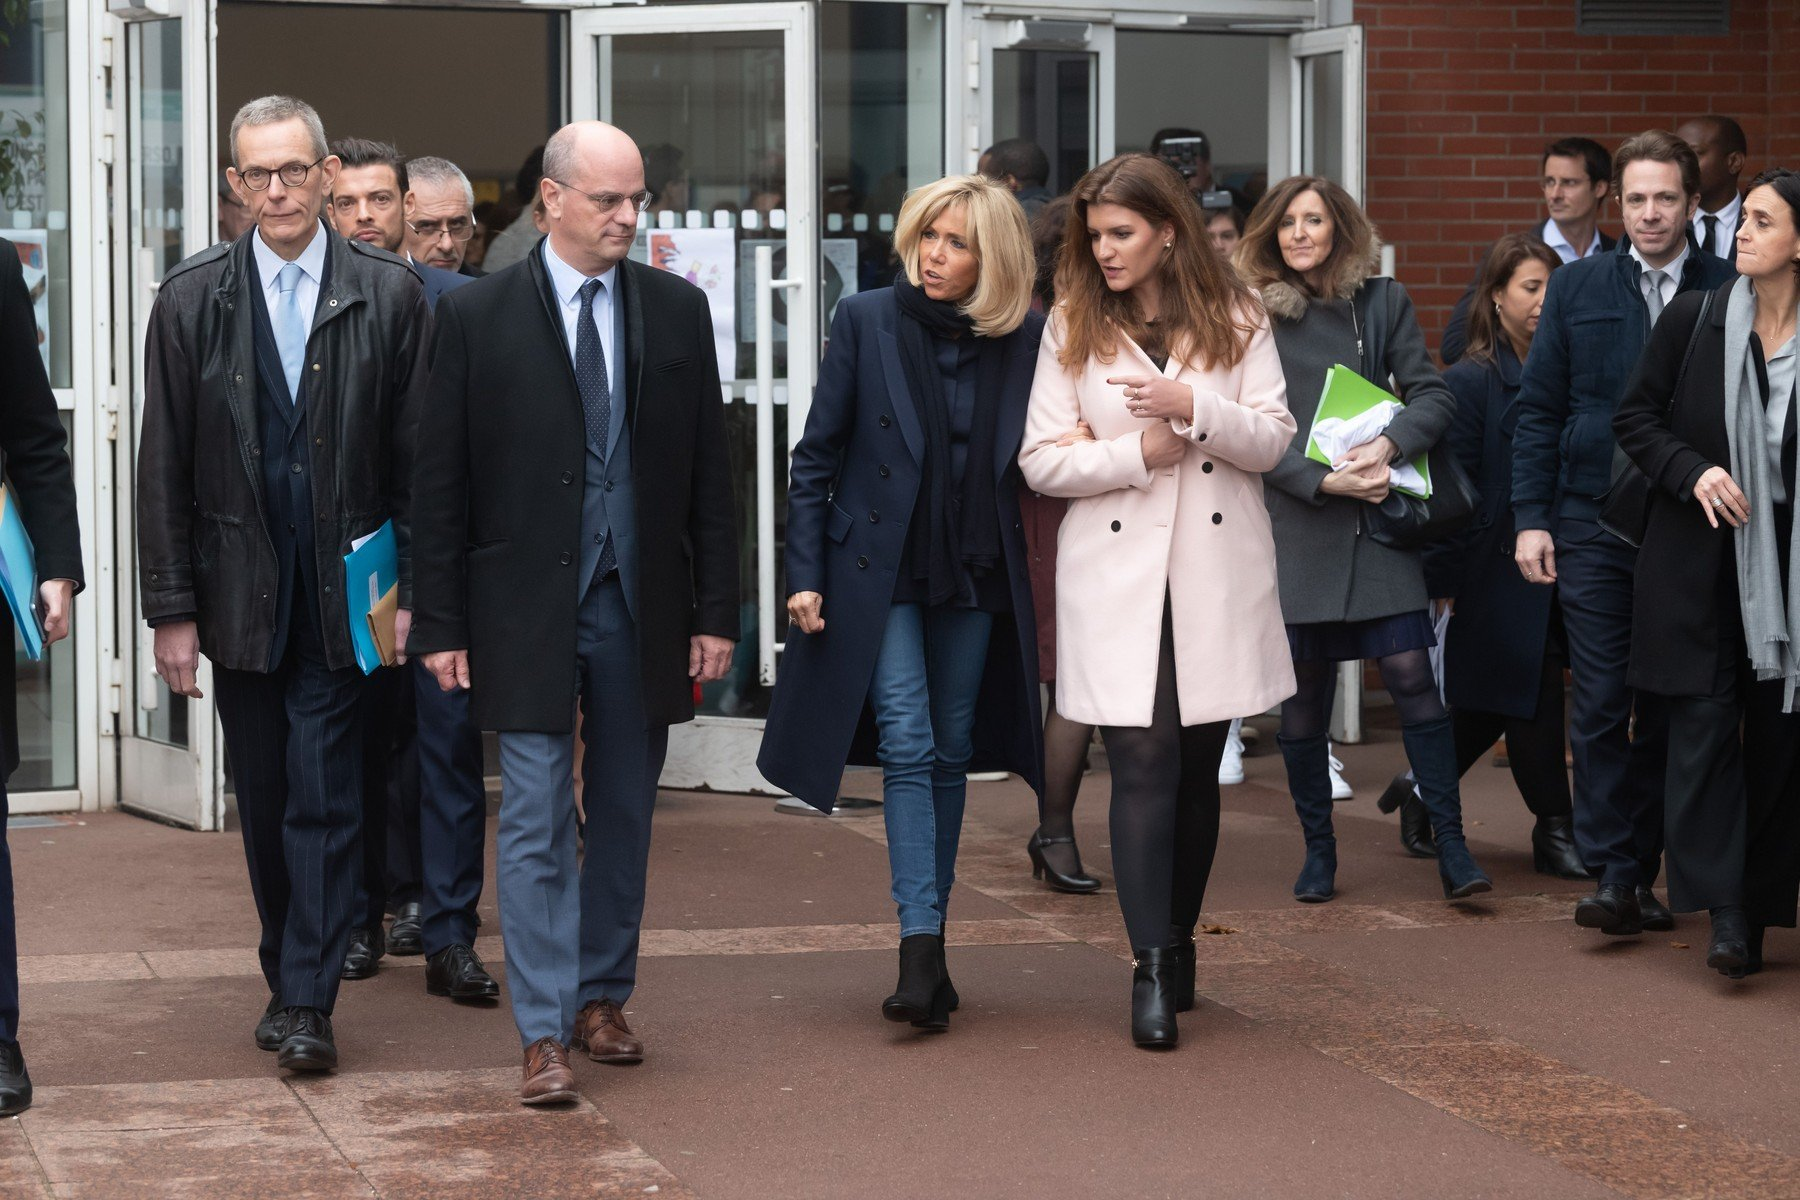 Jean-Michel Blanquer, Brigitte Macron and Marlene Schiappa. French Education Minister Jean-Michel Blanquer, French President's wife Brigitte Macron and French Junior Minister for Gender Equality Marlene Schiappa  visiting a school to raise awareness about bullying.  Clamart,FRANCE-15/11/2018    //JACQUESWITT_choix030/Credit:Jacques Witt/SIPA/1811151619, Image: 396309172, License: Rights-managed, Restrictions: , Model Release: no, Credit line: Profimedia, TEMP Sipa Press